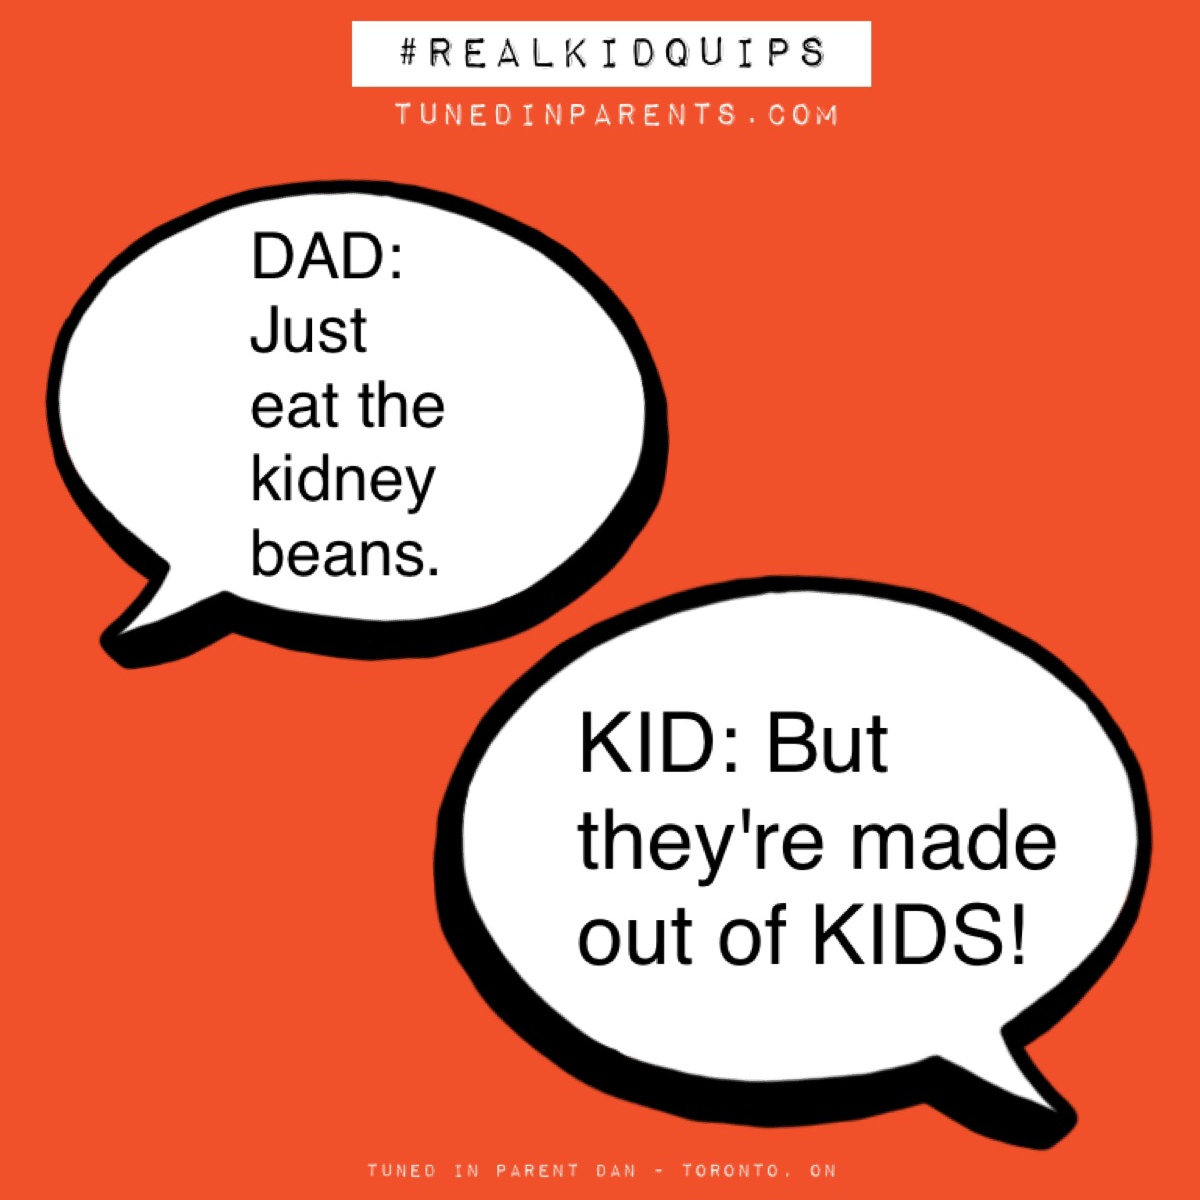 Quips N Quotes Tip Jar Top 10 Parenting Humor Tips And Real Kid Quips  Tuned